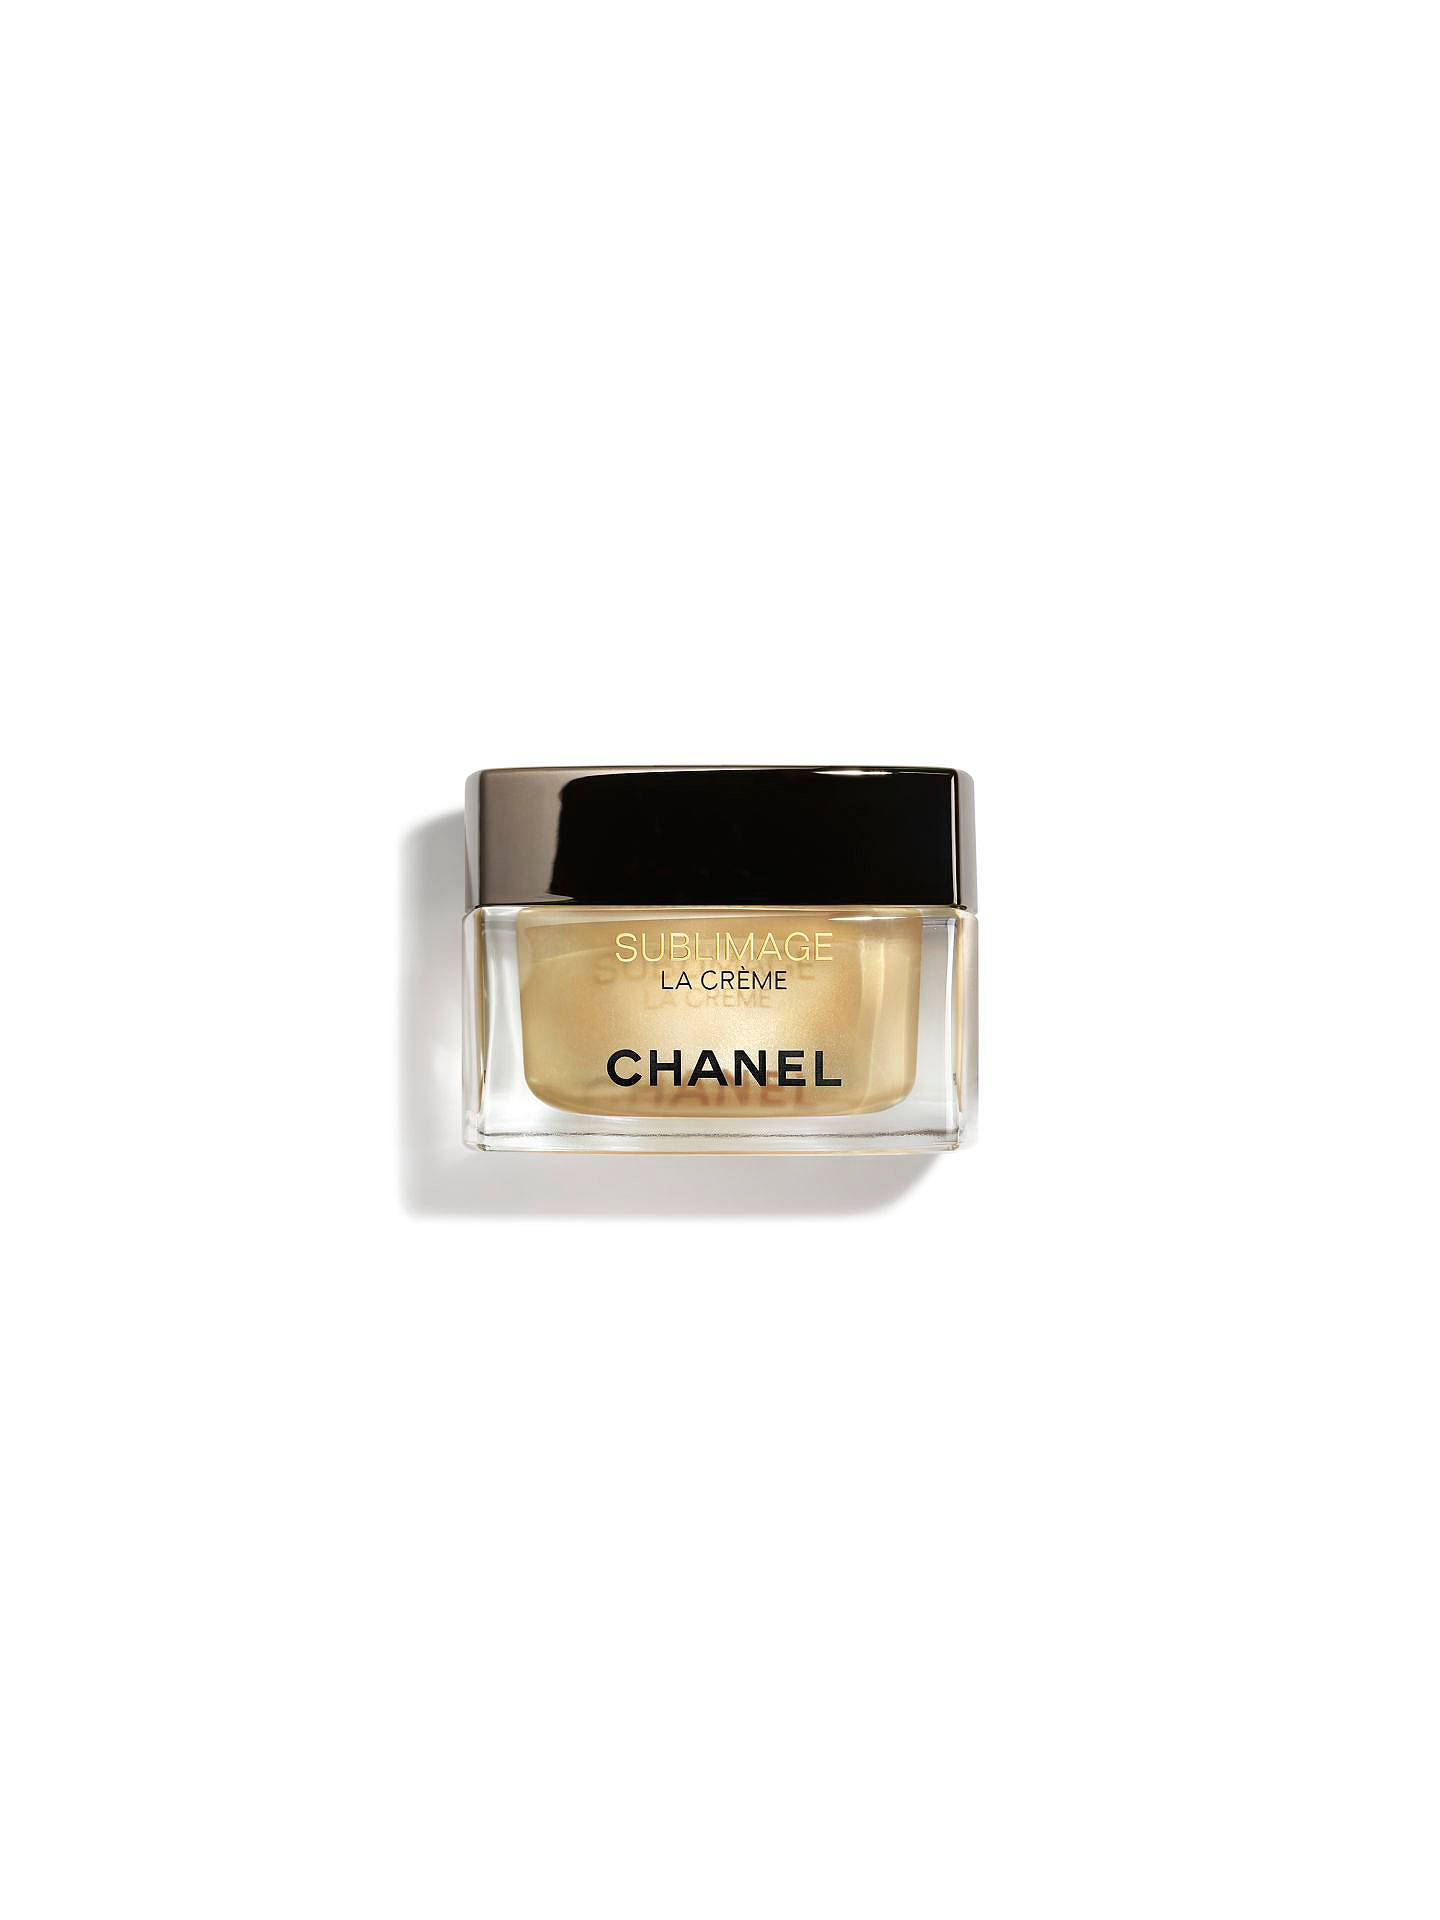 Buy CHANEL Sublimage La Crème Ultimate Skin Revitalisation Online at johnlewis.com